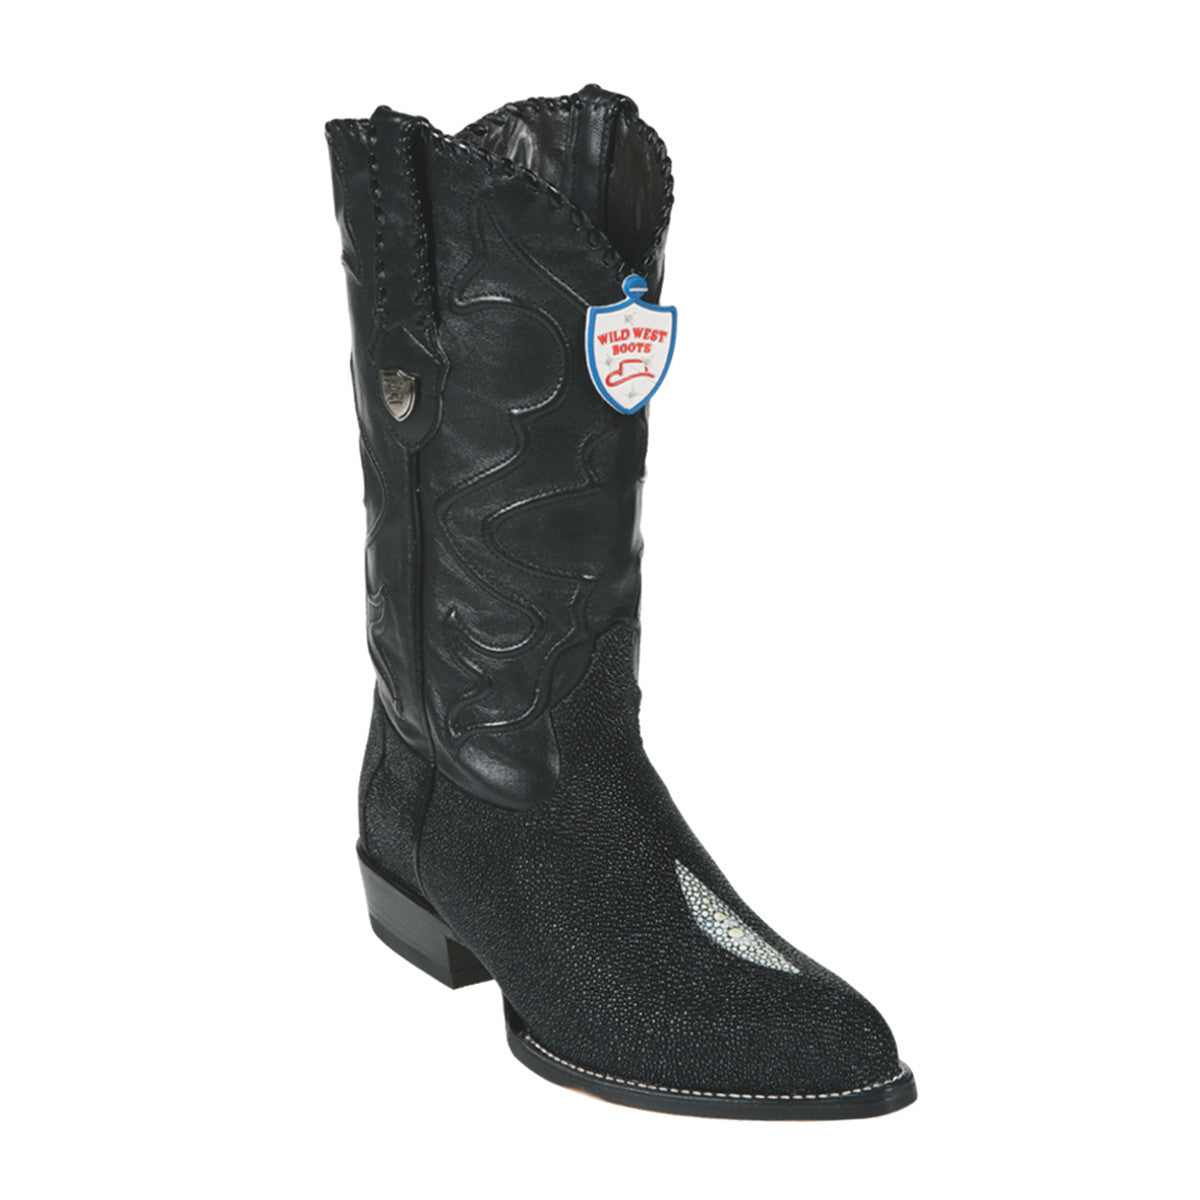 Wild West Boots  J-Toe Stingray Single Stone